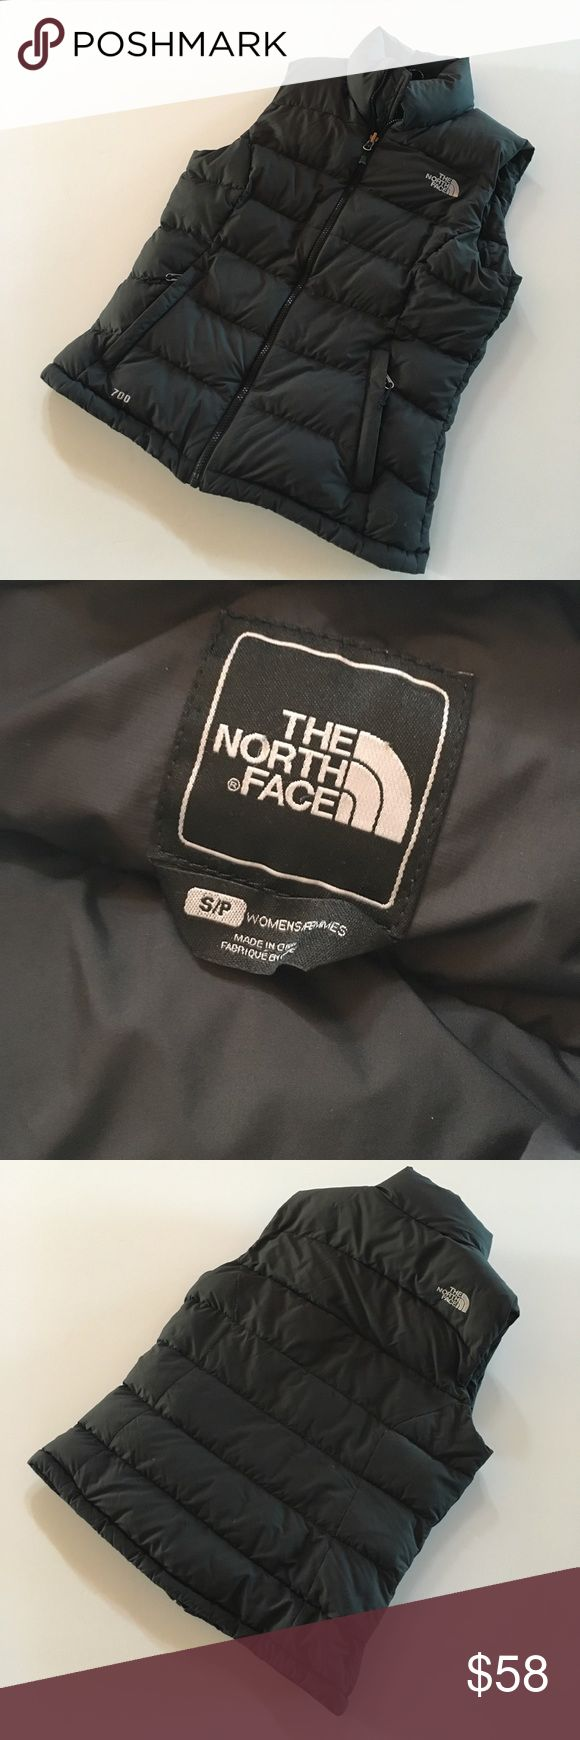 North Face black down puffy vest size small Cozy and classic! Size small puffy goose down feather vest from the North Face. Gently worn. North Face Jackets & Coats Vests